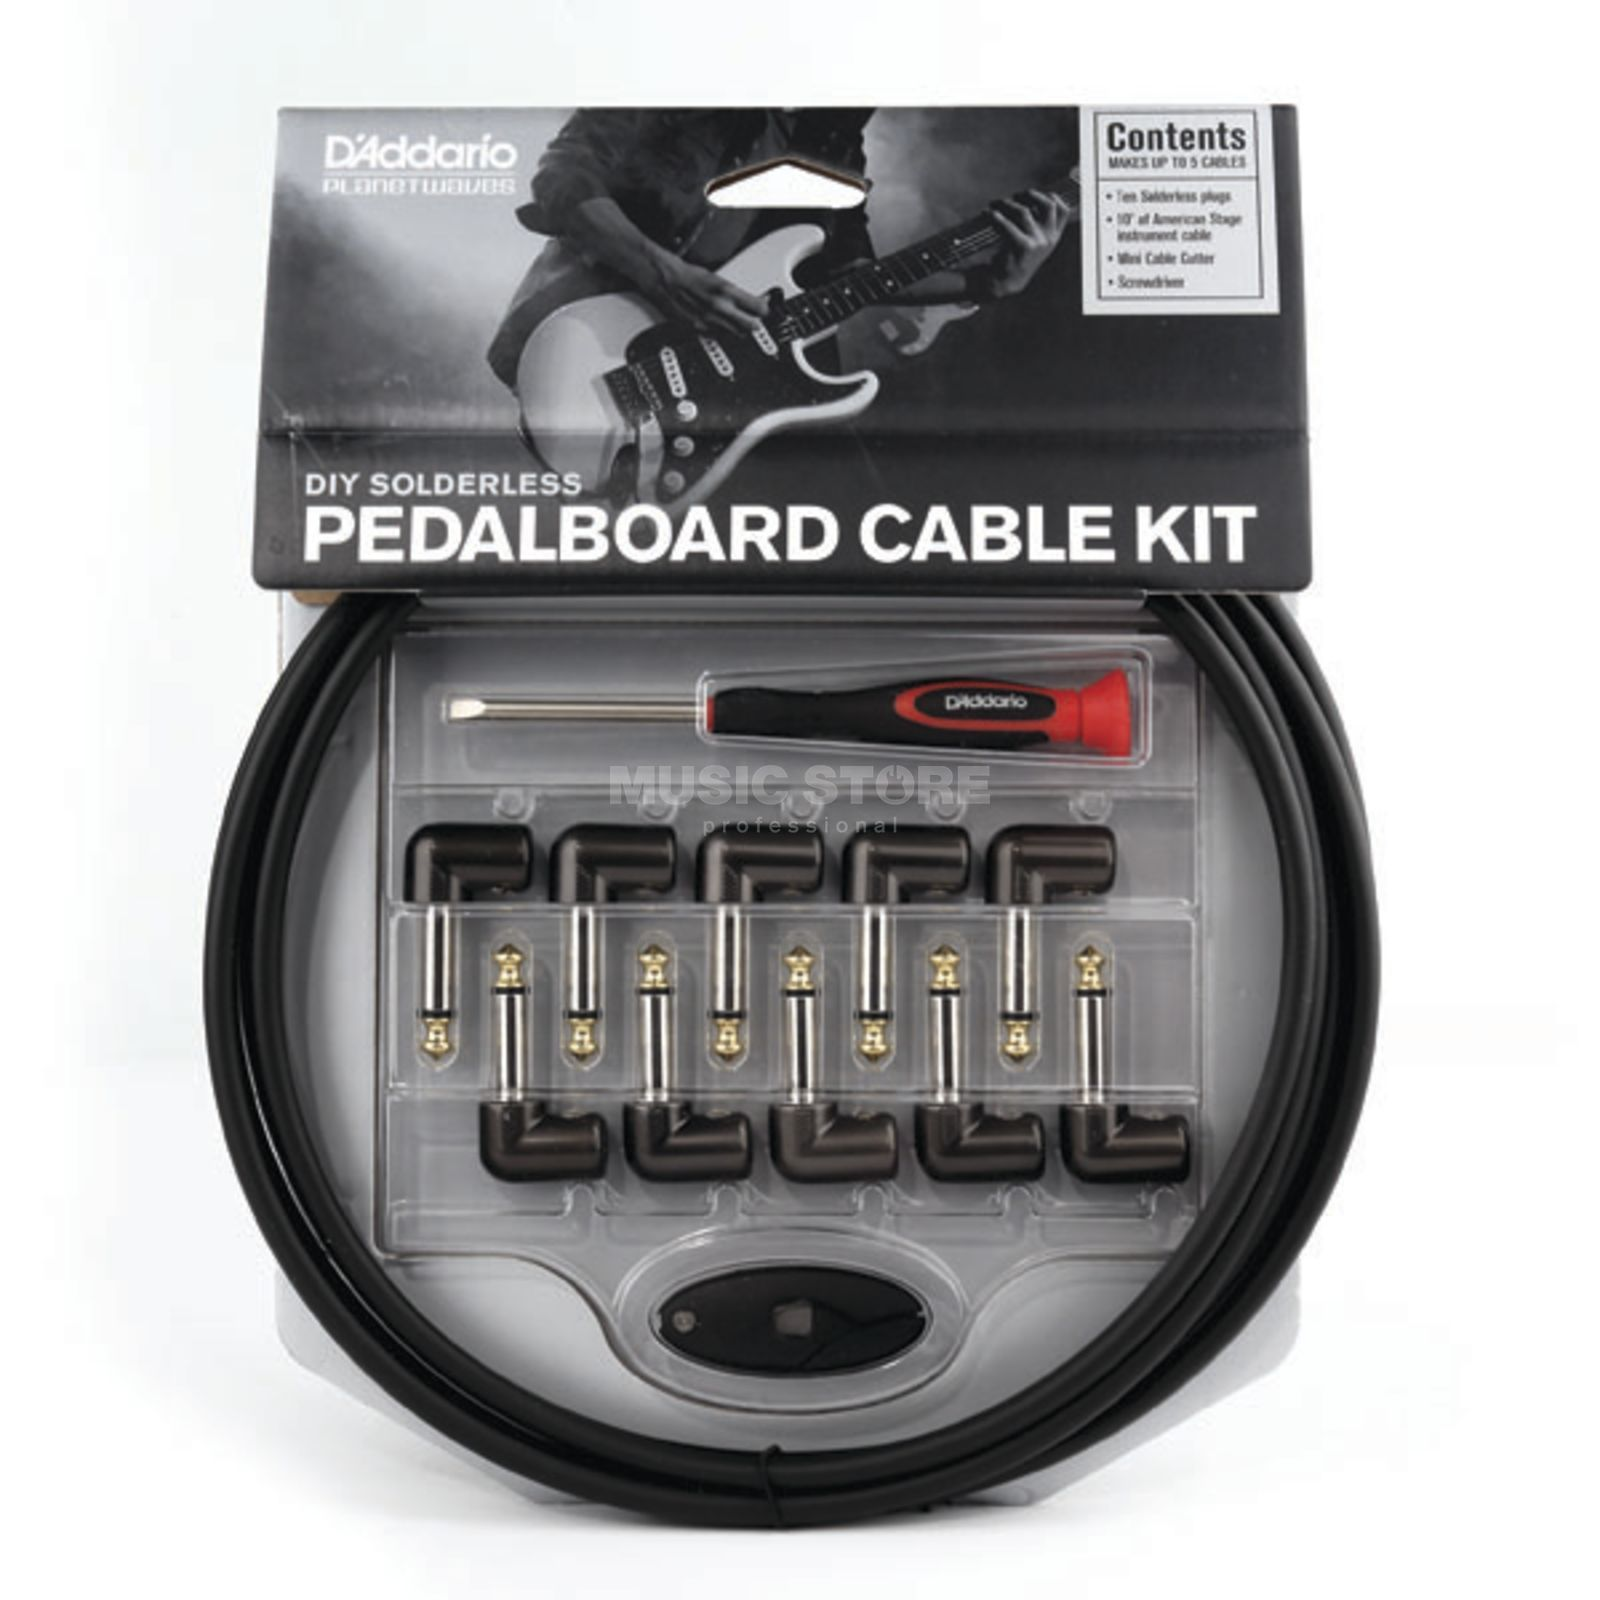 D'Addario Planet Waves Kabel Kit für Pedale und Racks  Produktbild